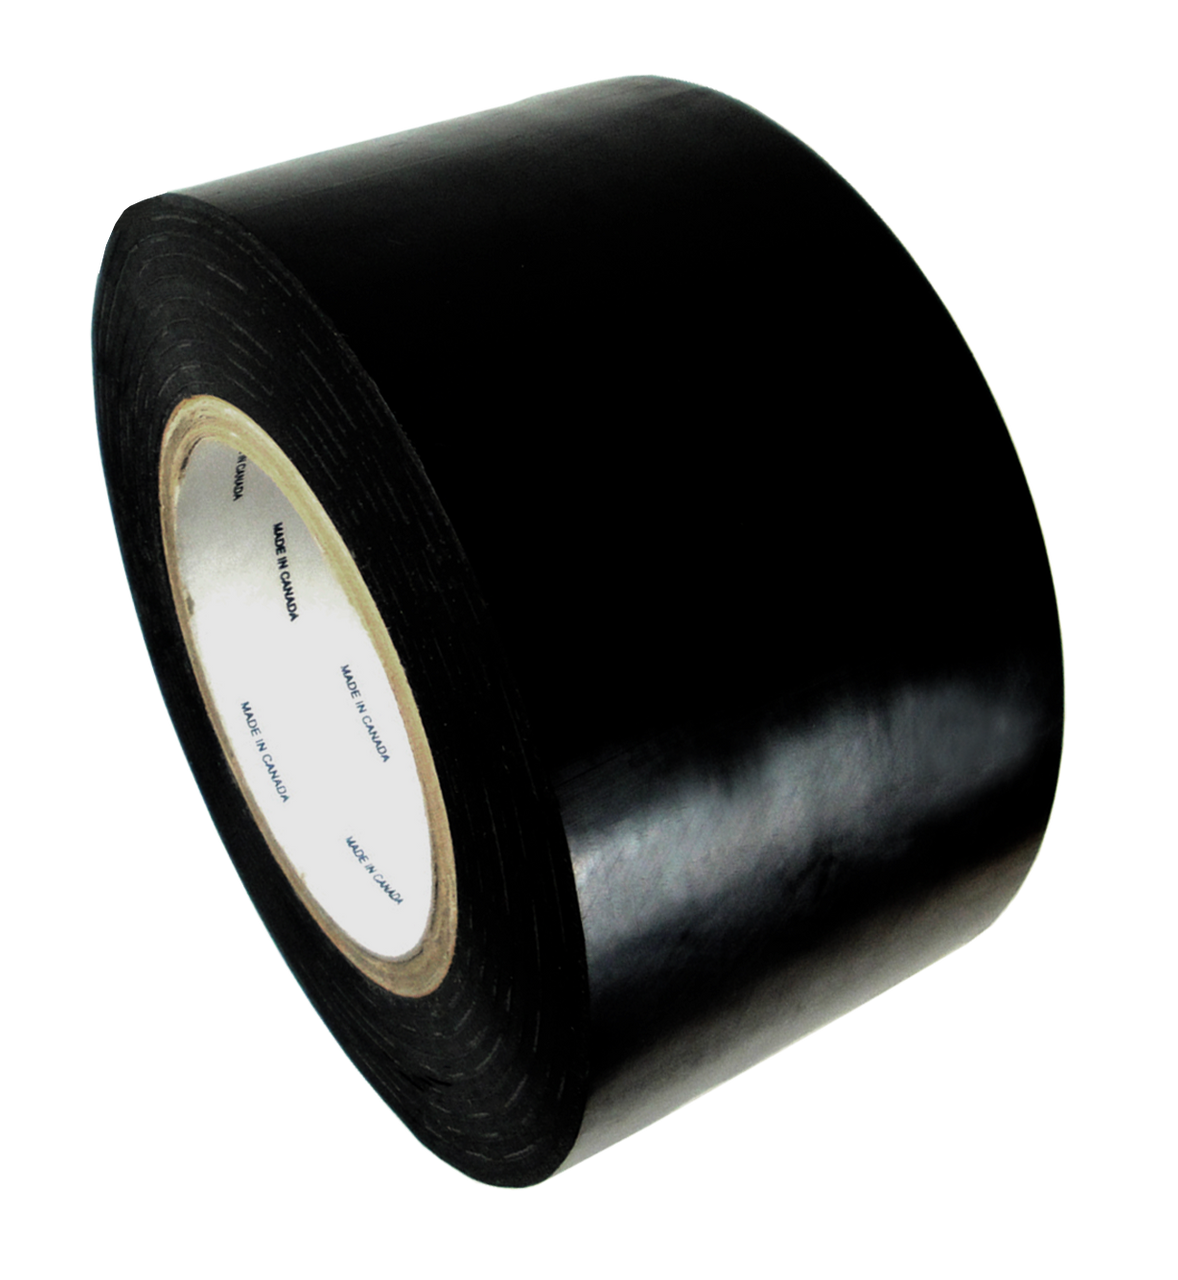 Berry Plastics PVC General Purpose Electrical Tape 60/' Length 3//4 7 mil Thick